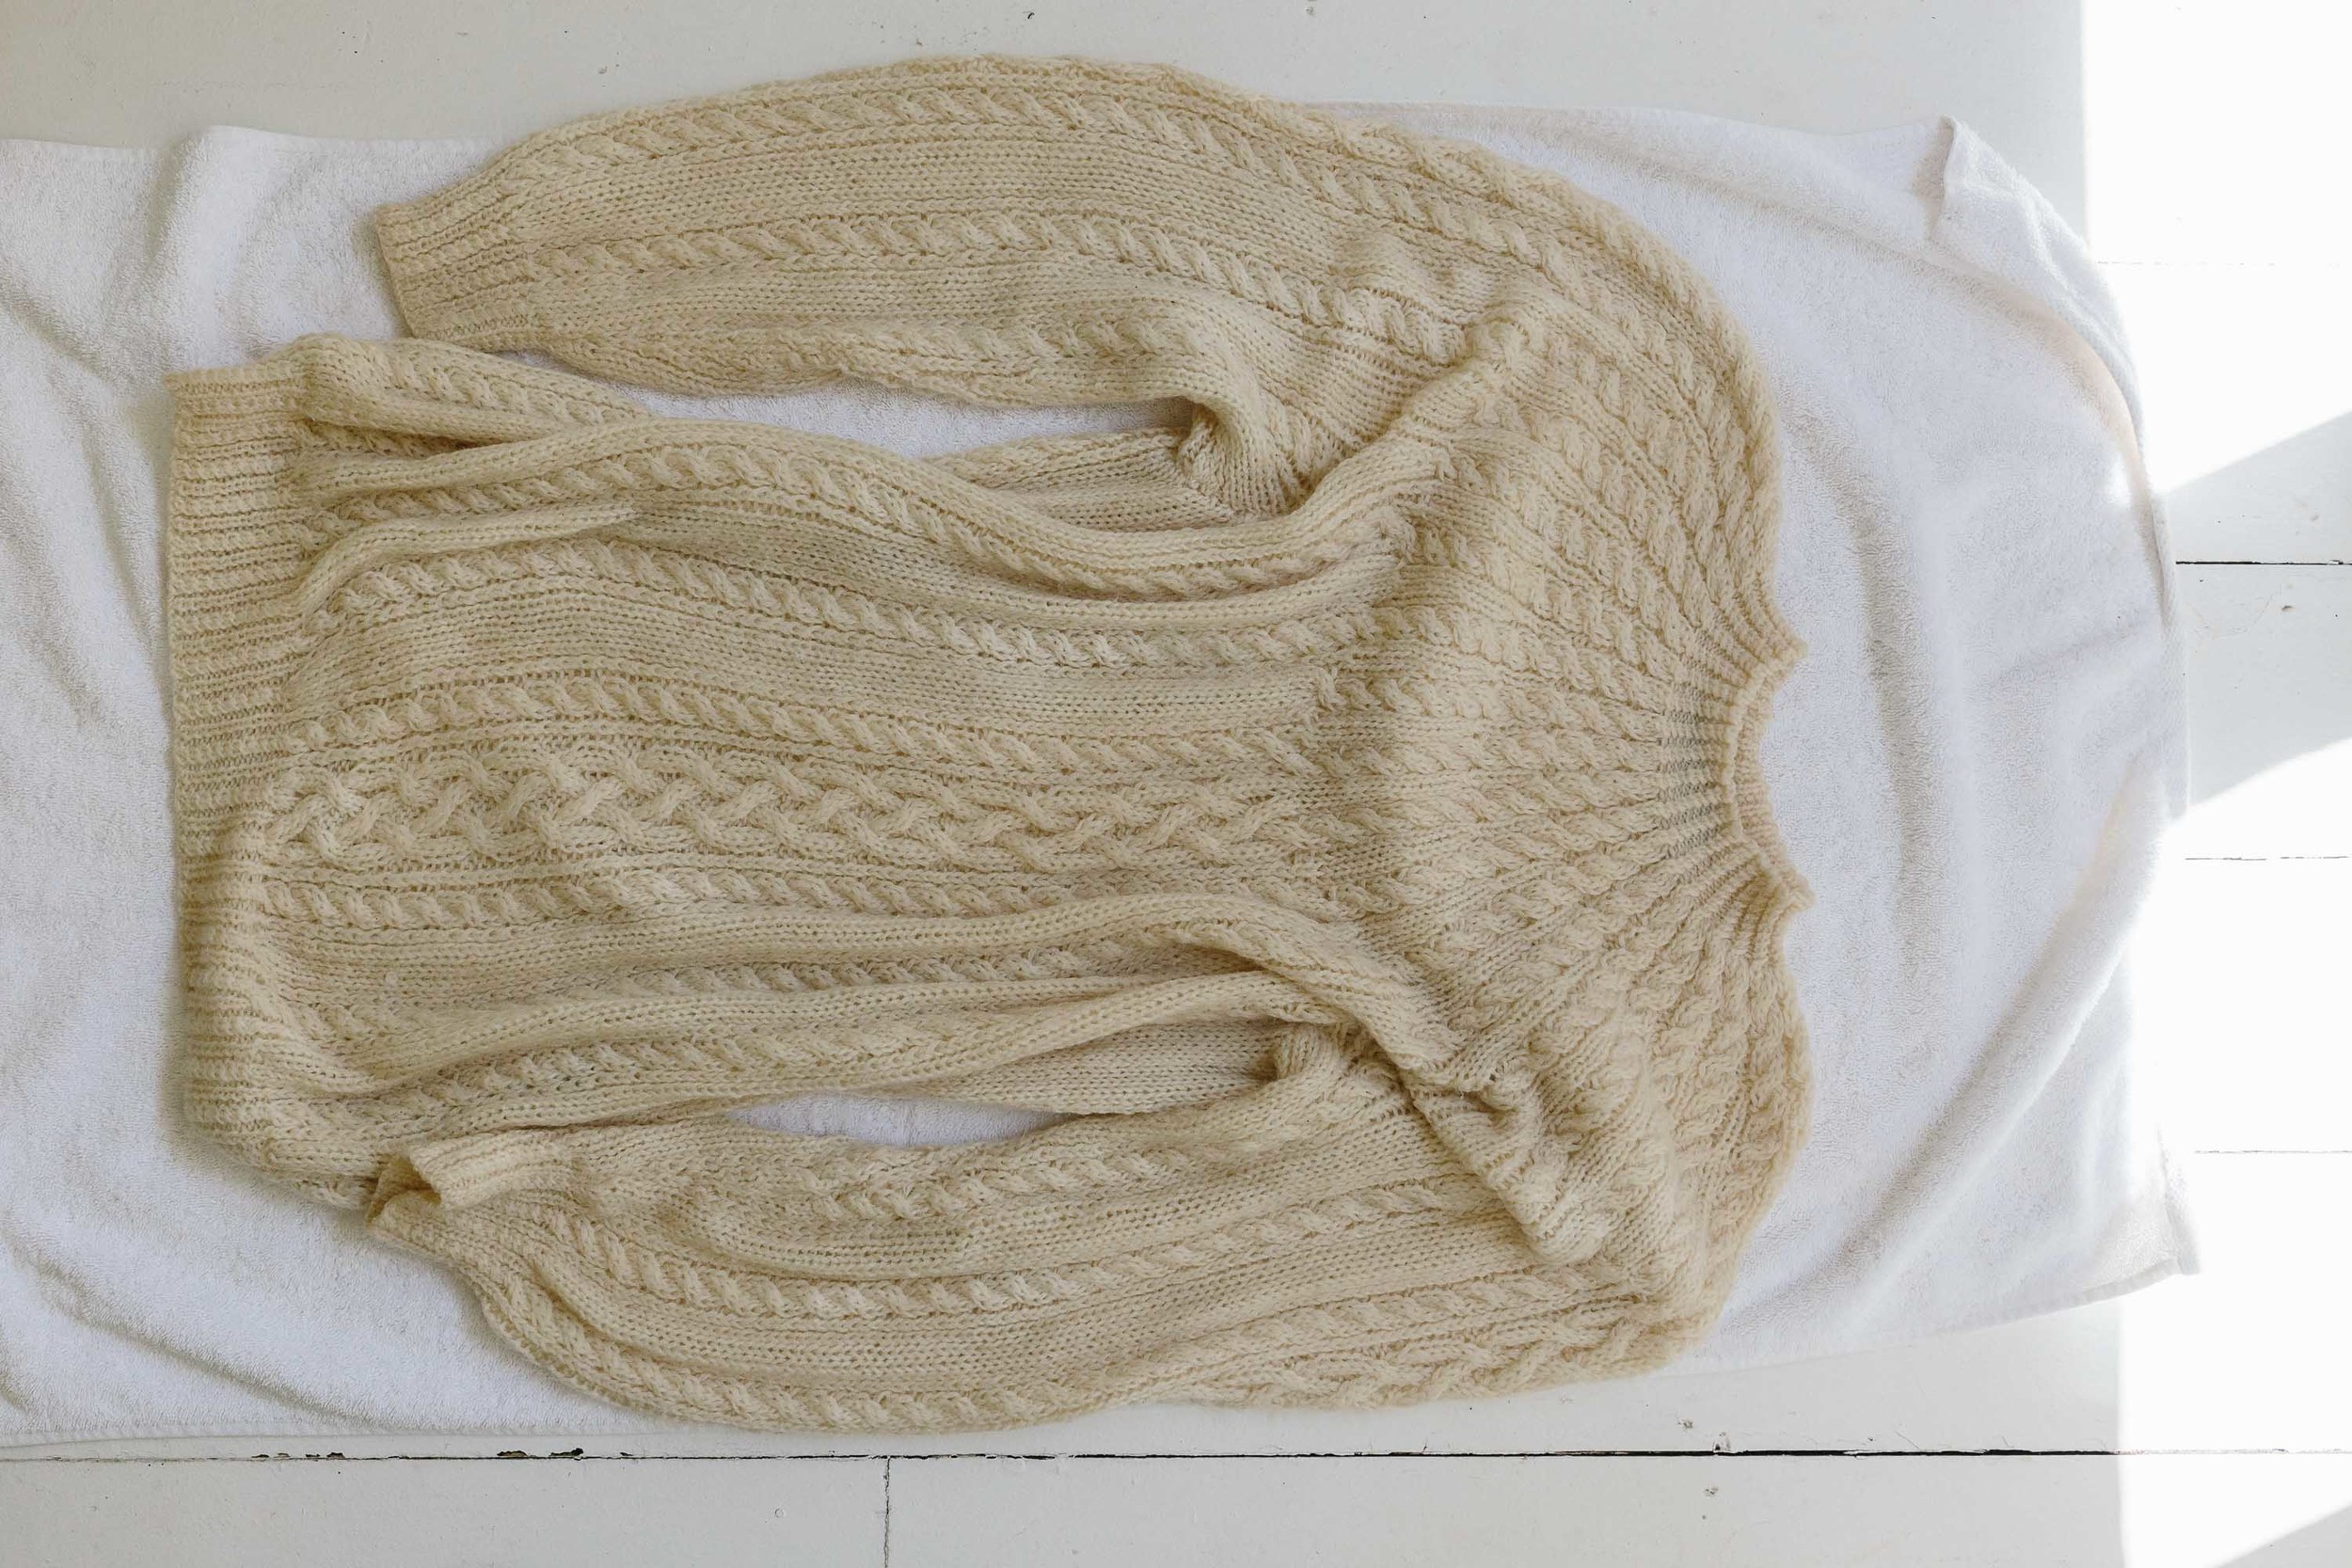 How to wash woollens